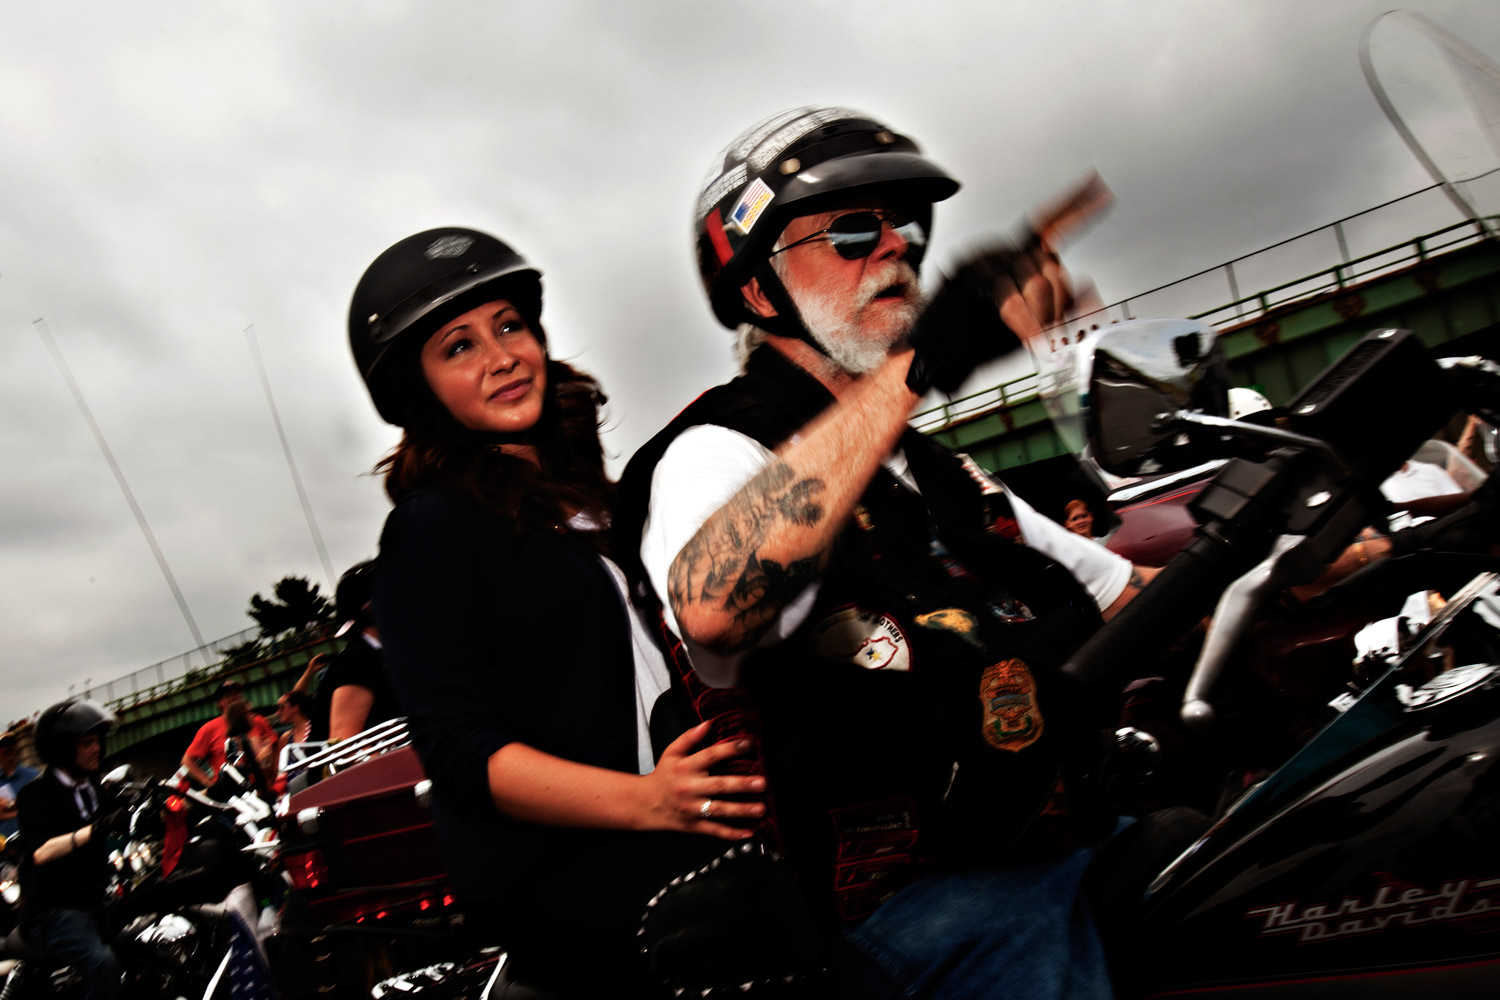 Bristol Palin, daughter of Sarah Palin, takes part in the Rolling Thunder motorcycle ride to honor U.S. veterans in Washington May 29, 2011.